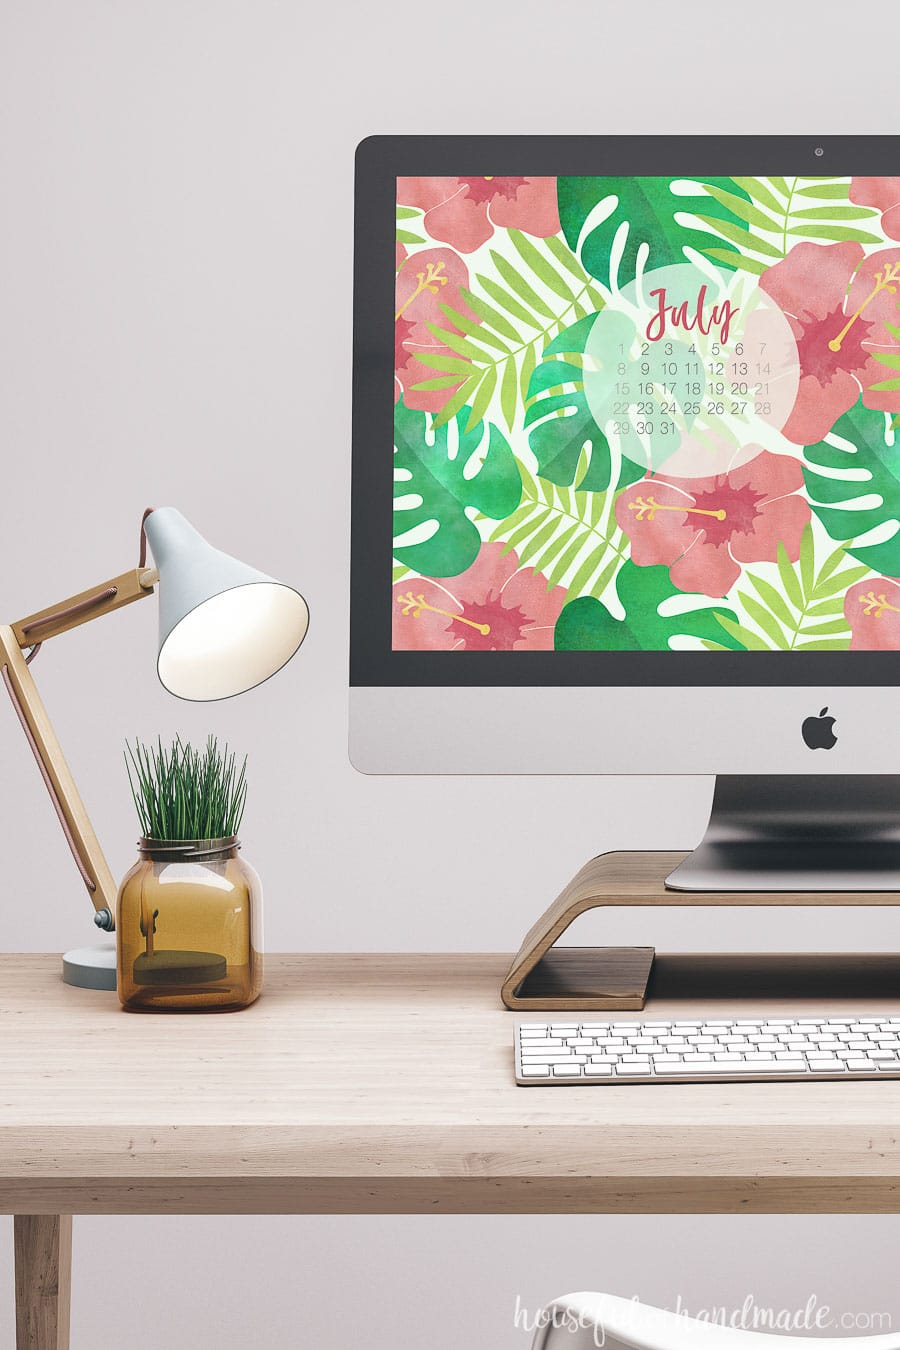 Take a vacation every time you see your screen with these free digital backgrounds for July. The bright colorful hibiscus and palm leaves are the perfect digital wallpaper for summer. Housefulofhandmade.com